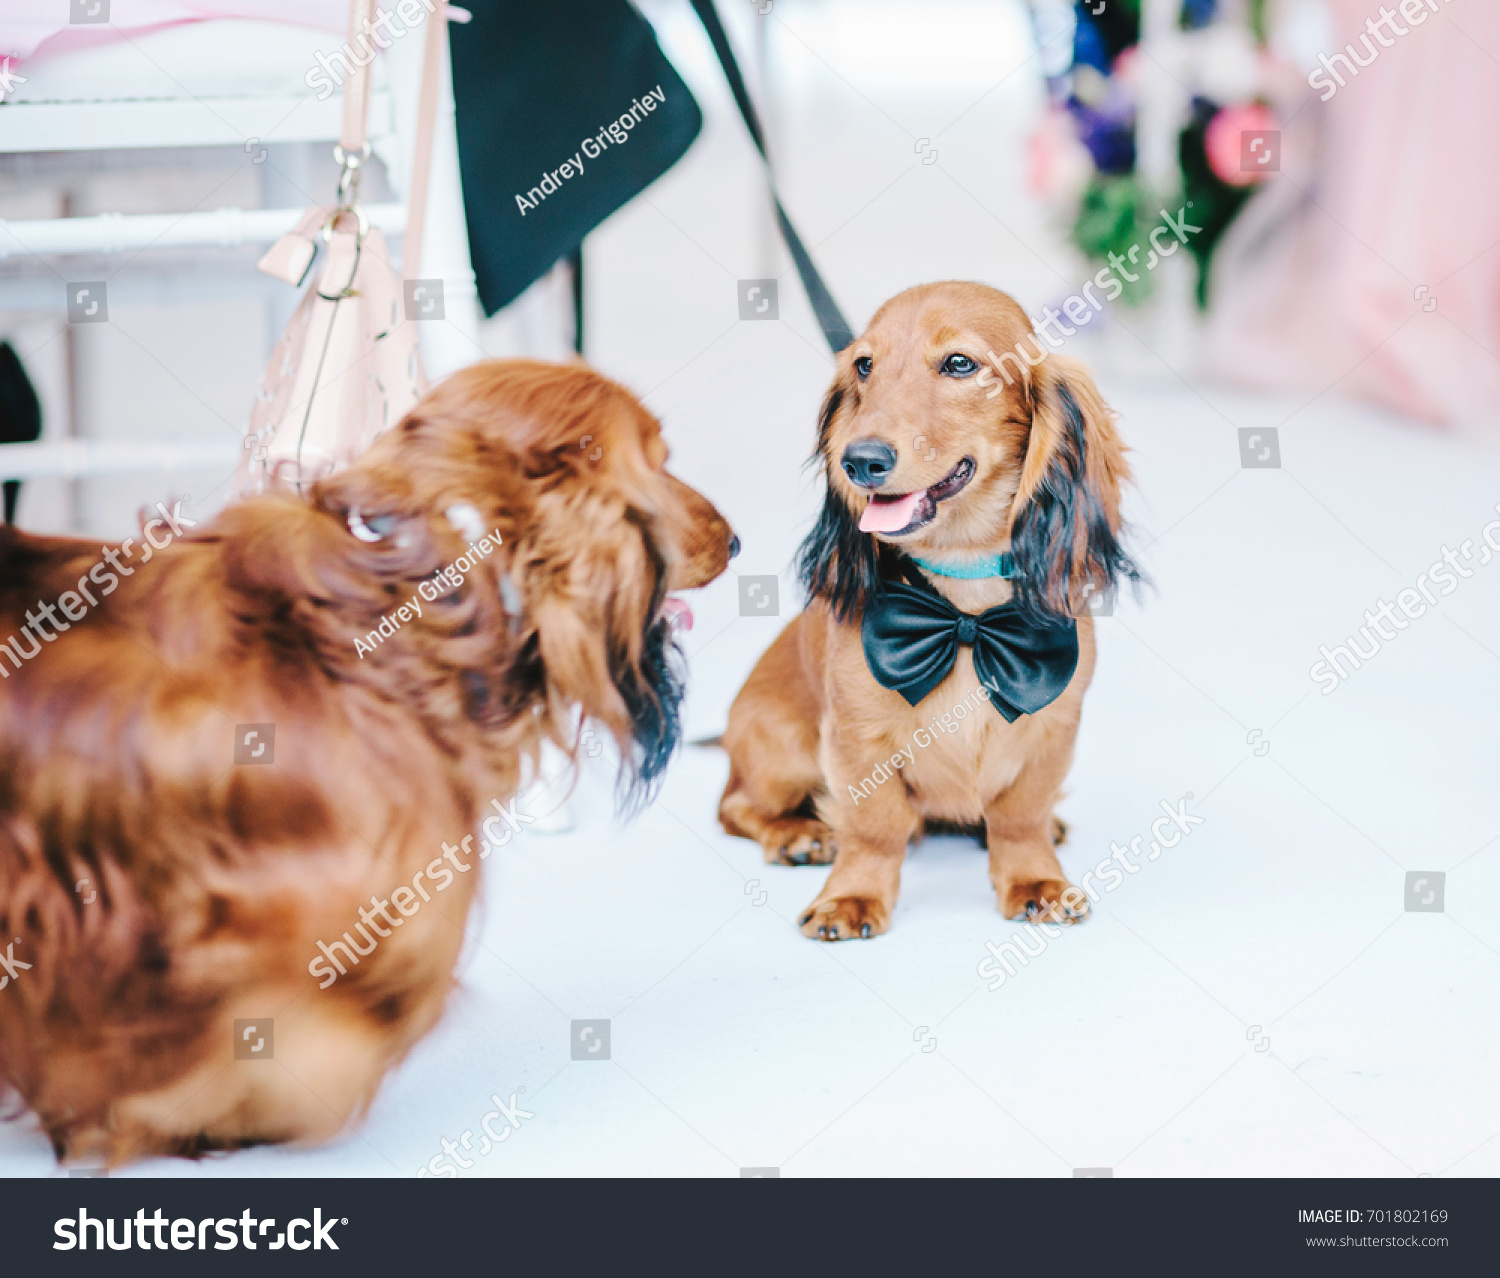 Two Dogs Suit Wedding Concept Wedding Stock Photo 701802169 ...